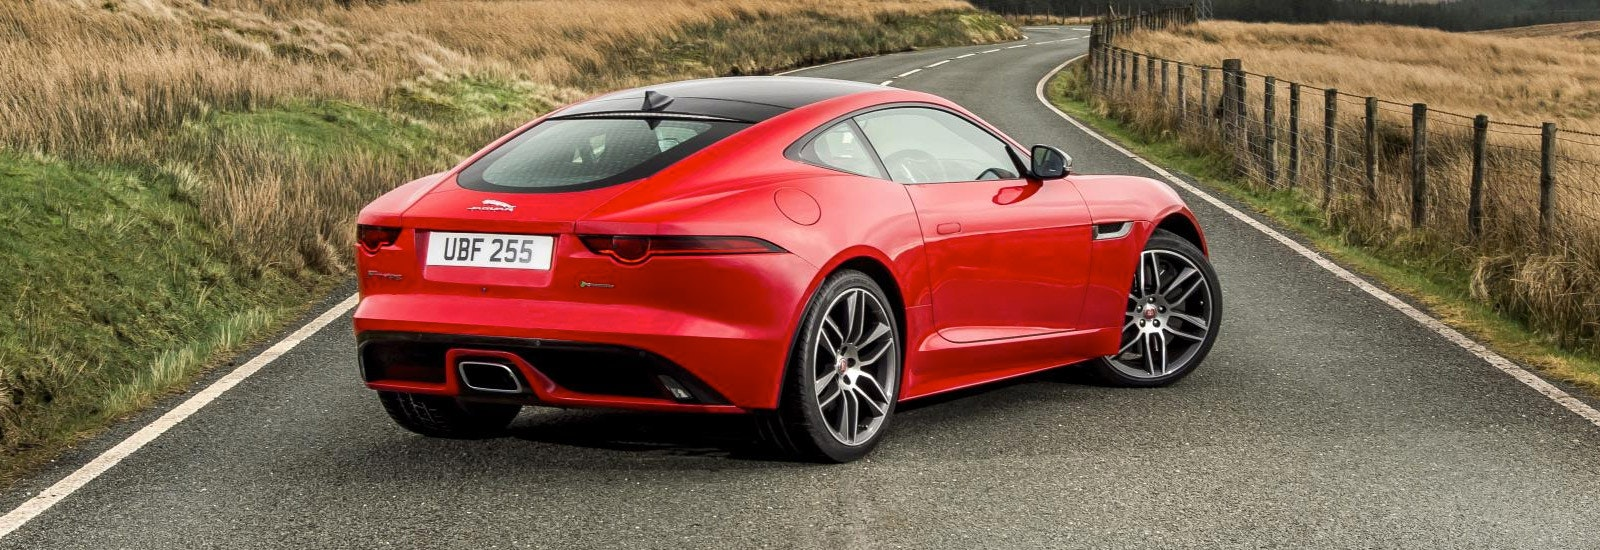 Unlike The V6, The New Four Cylinder Model Will Only Be Available With An  Eight Speed Automatic Gearbox. Itu0027ll Be The First F Type To Come With A  Host Of ...